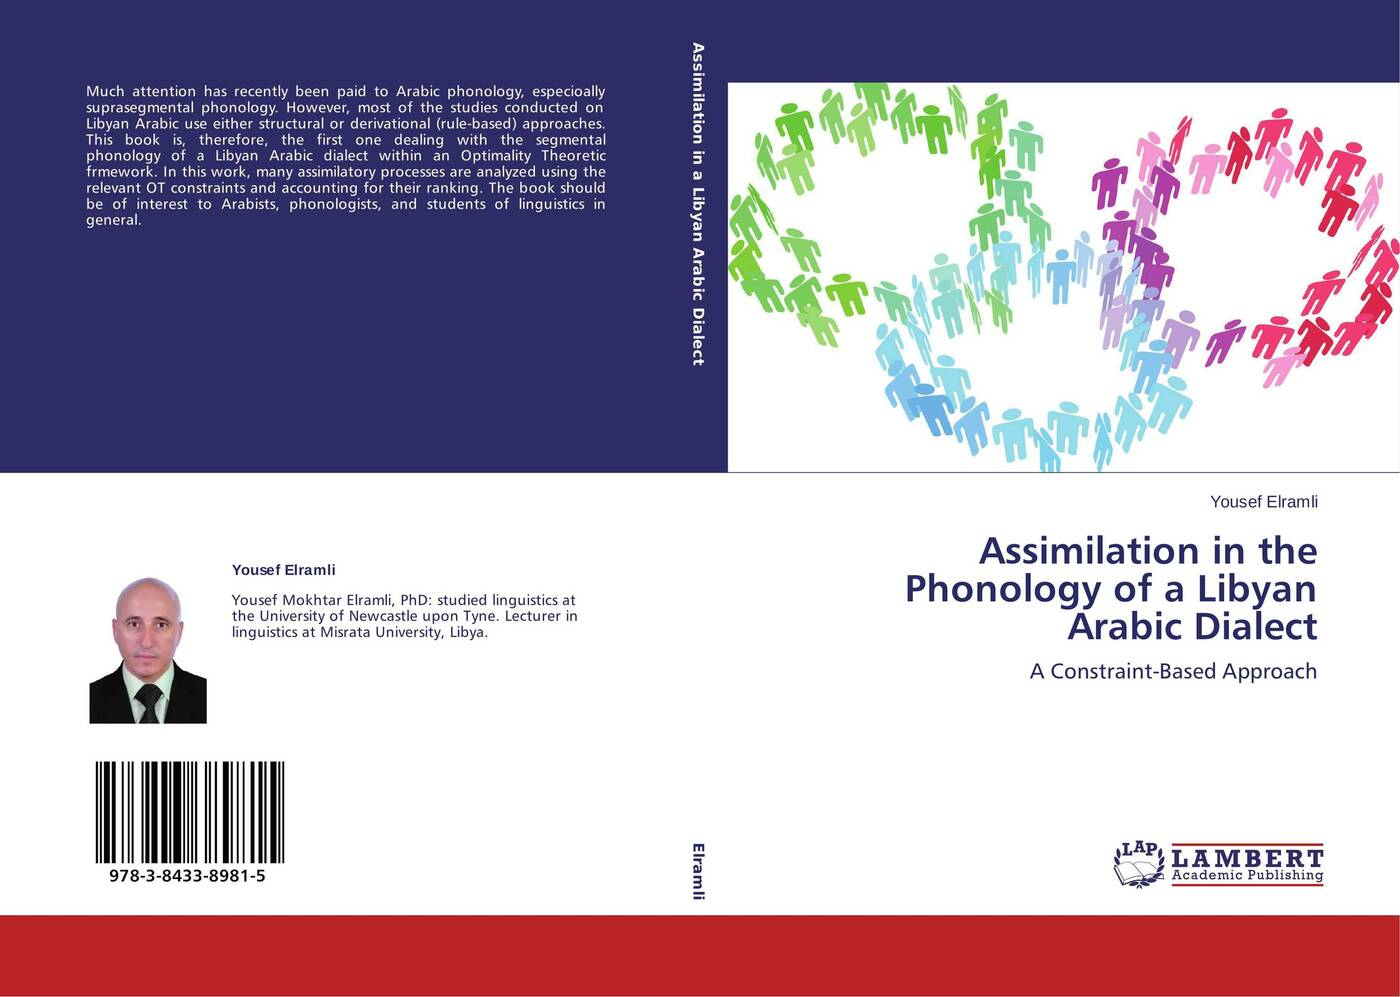 Yousef Elramli Assimilation in the Phonology of a Libyan Arabic Dialect mehmet yavas applied english phonology